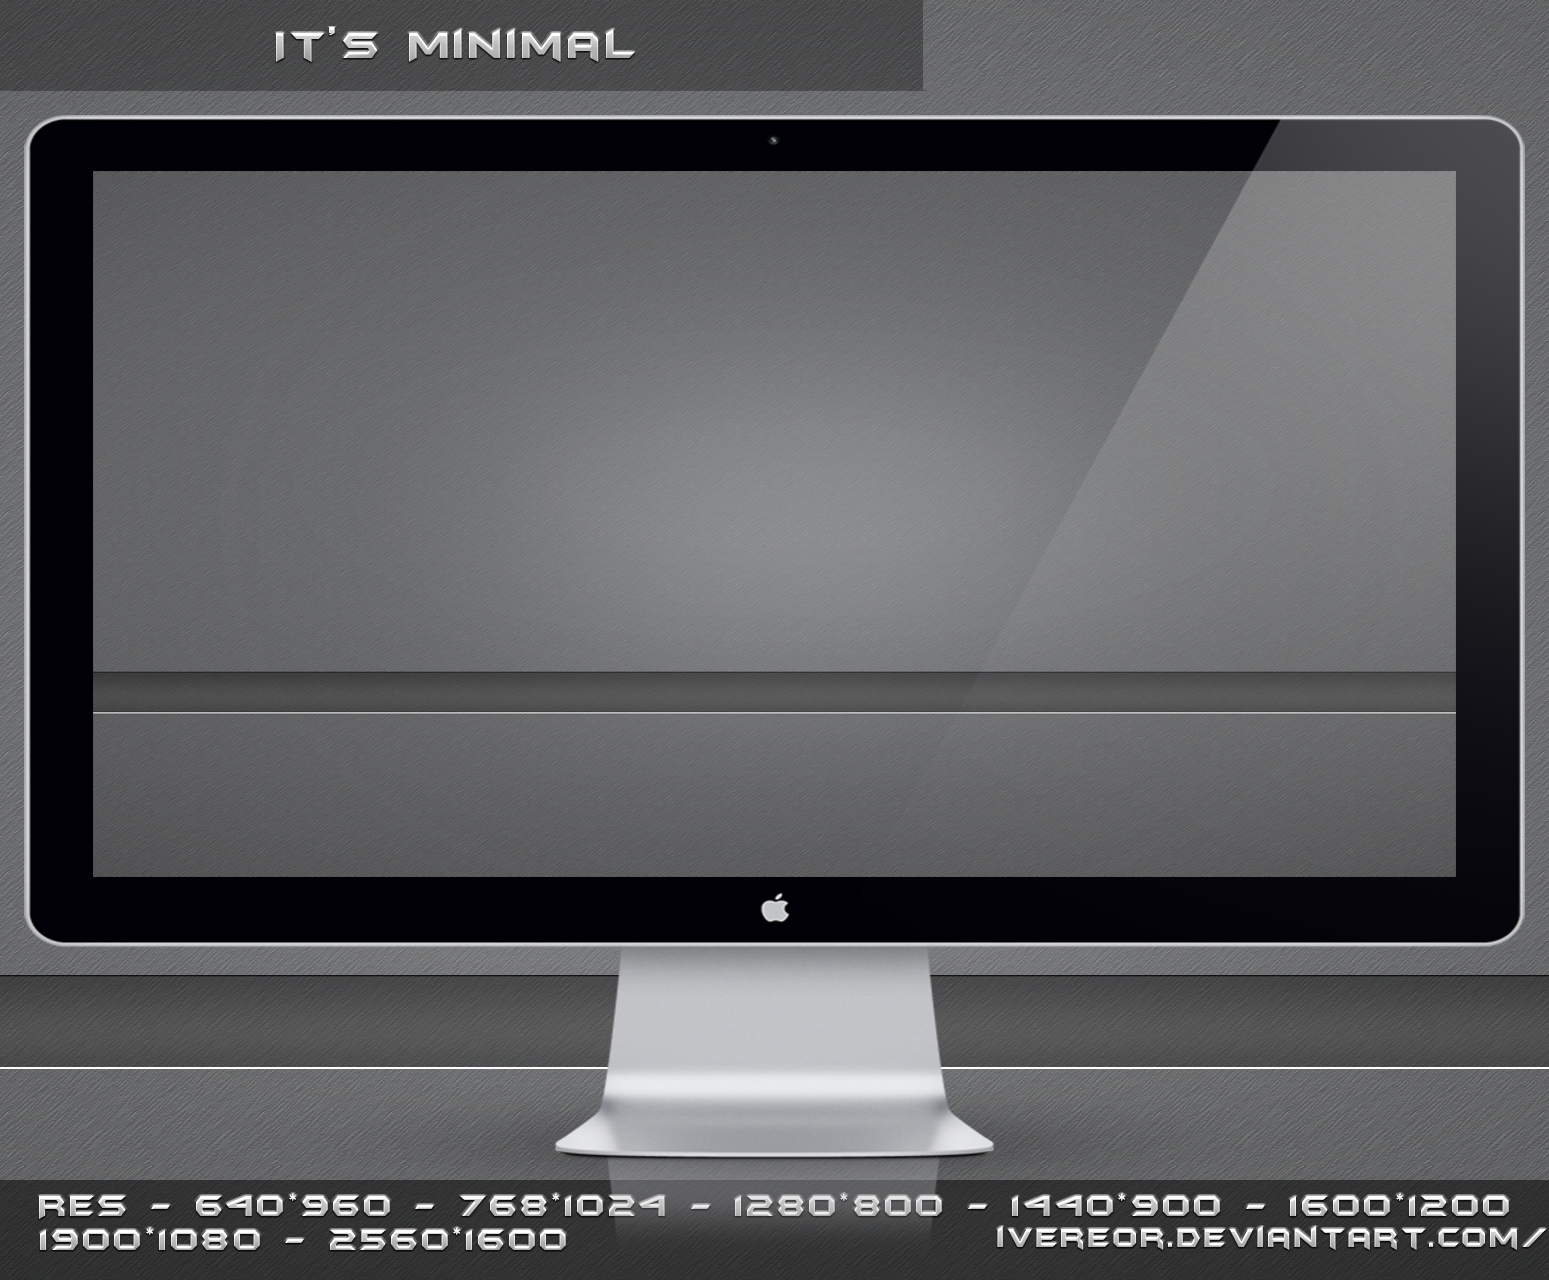 It's Minimal by iVereor